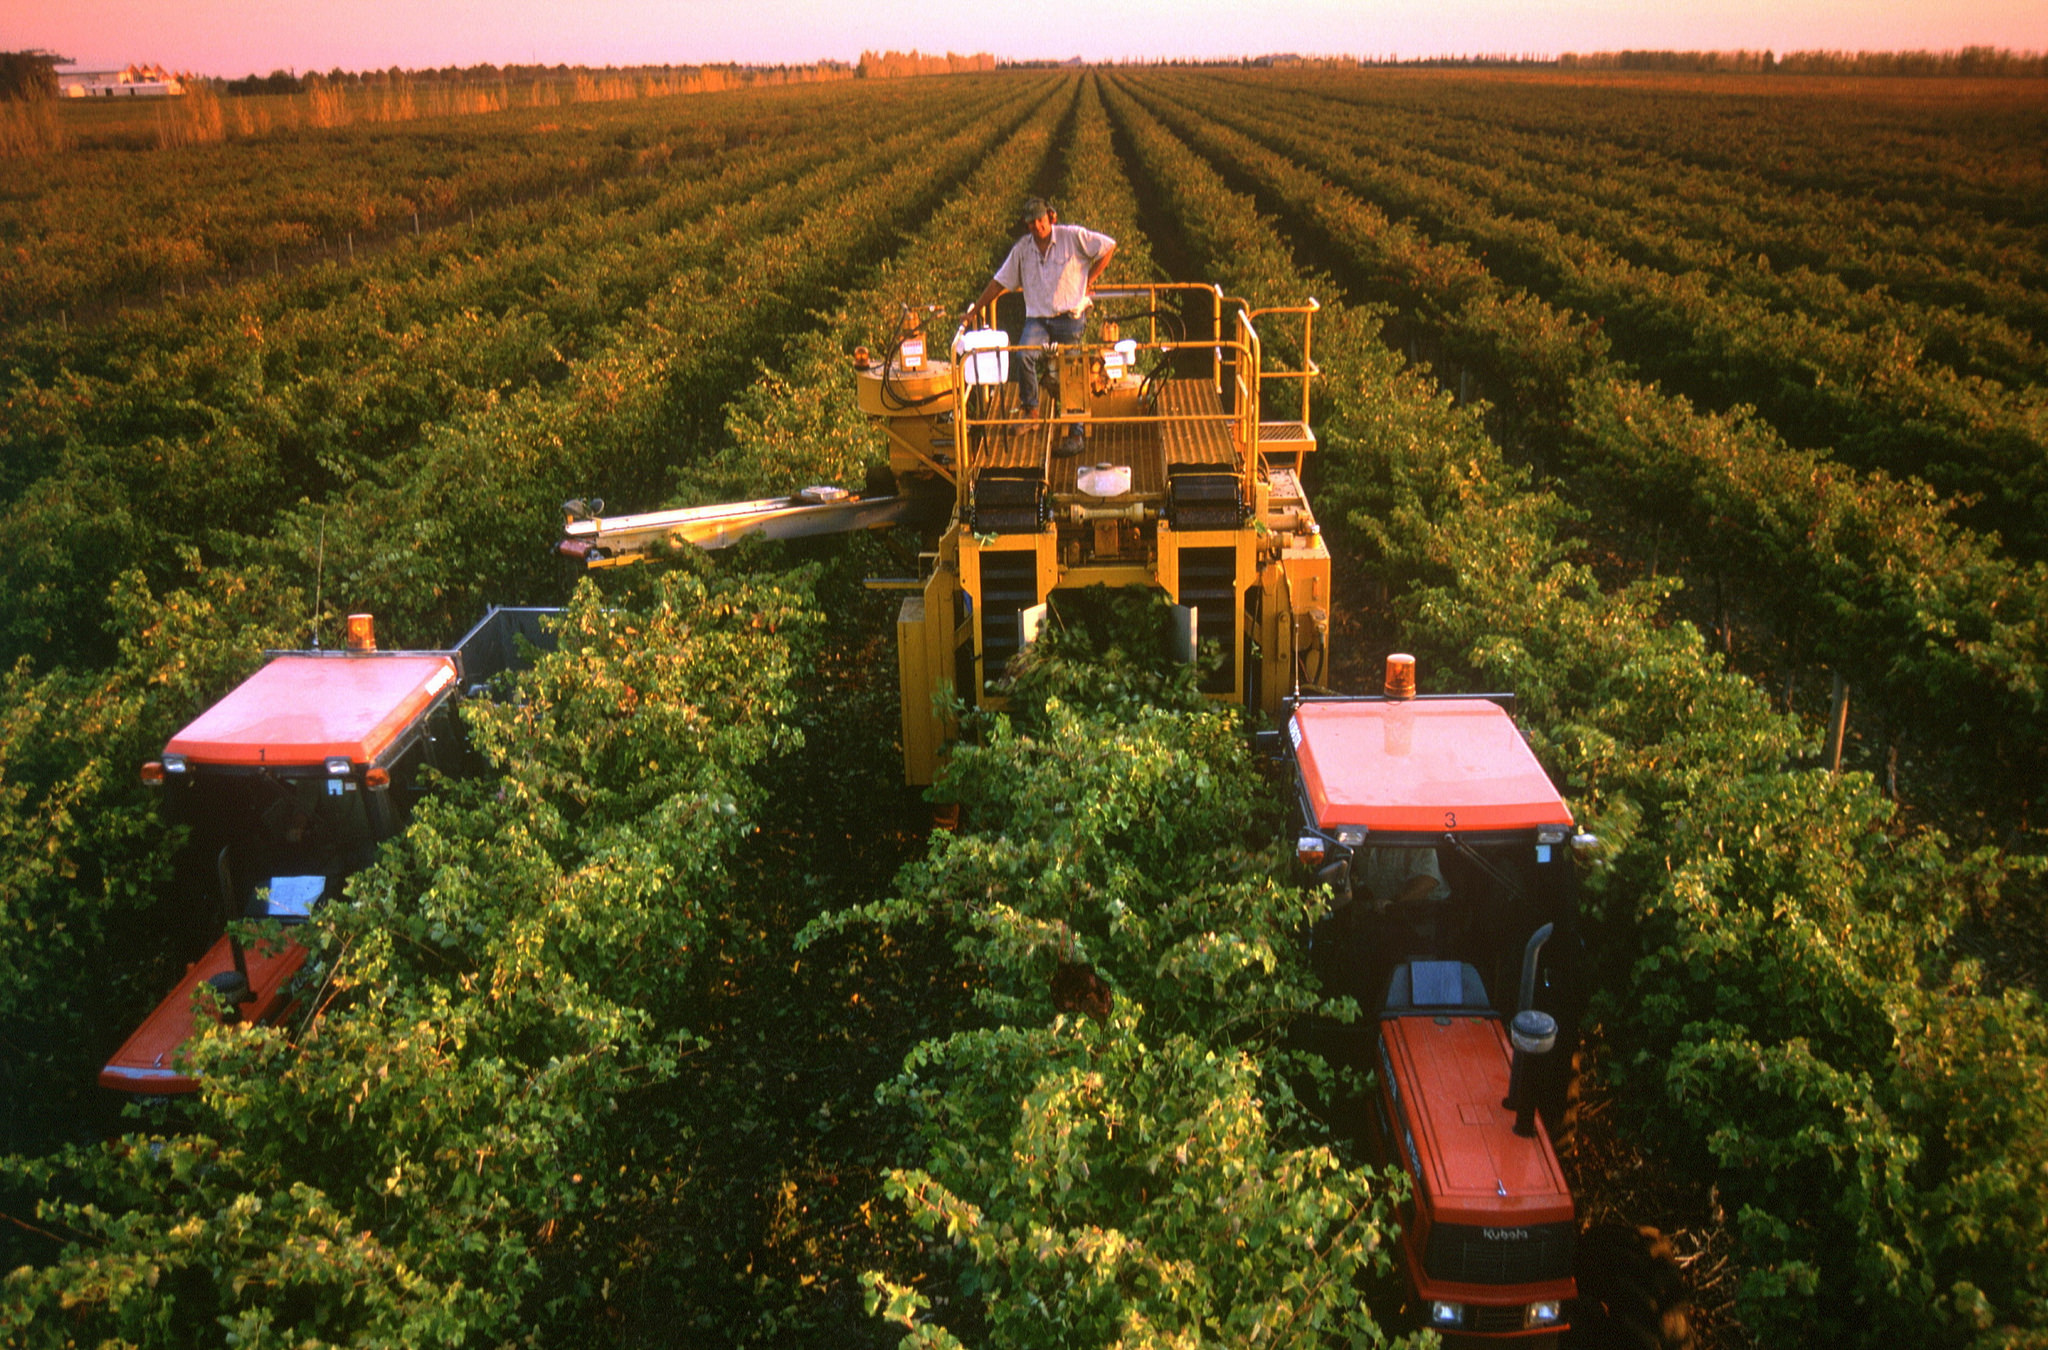 wine-grape-harvest-south-australia-coonawarra-roderick-eime